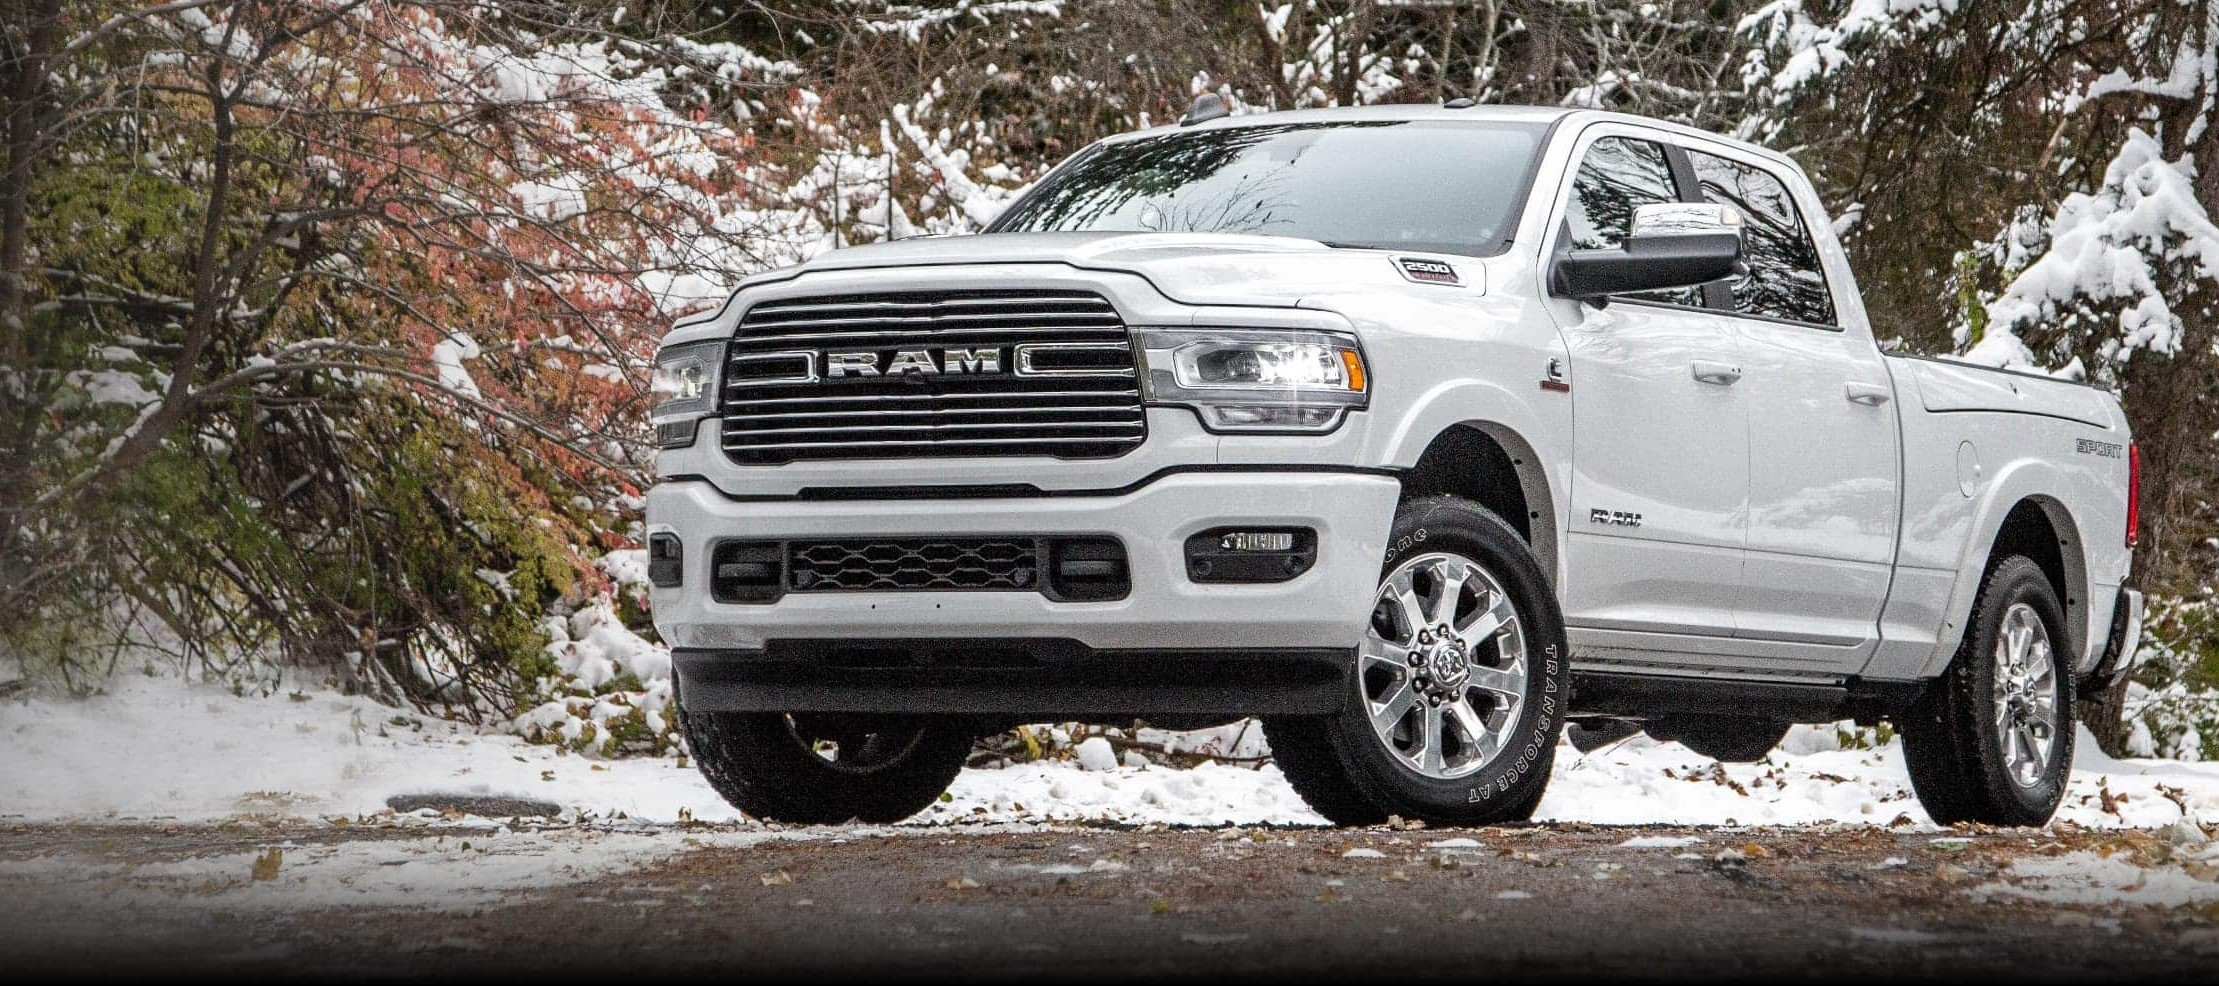 RAM 2500s part of our Truck month deals!